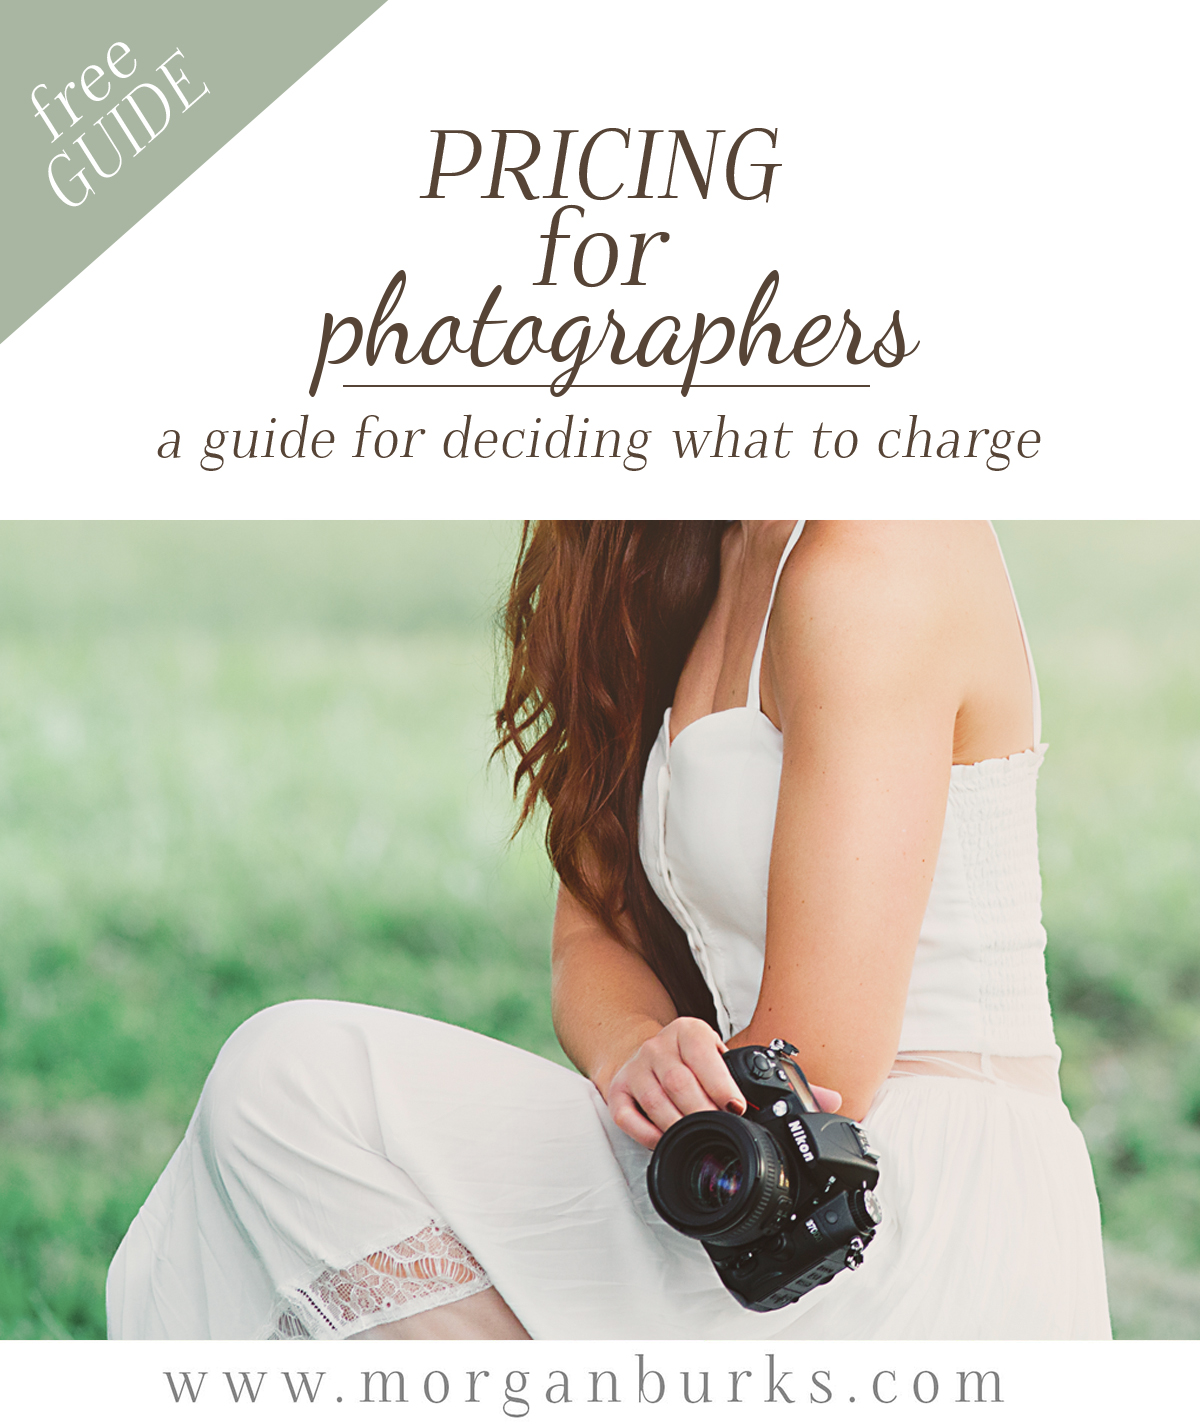 A free guide to help photographers consider all the factors that should go into deciding what to charge.